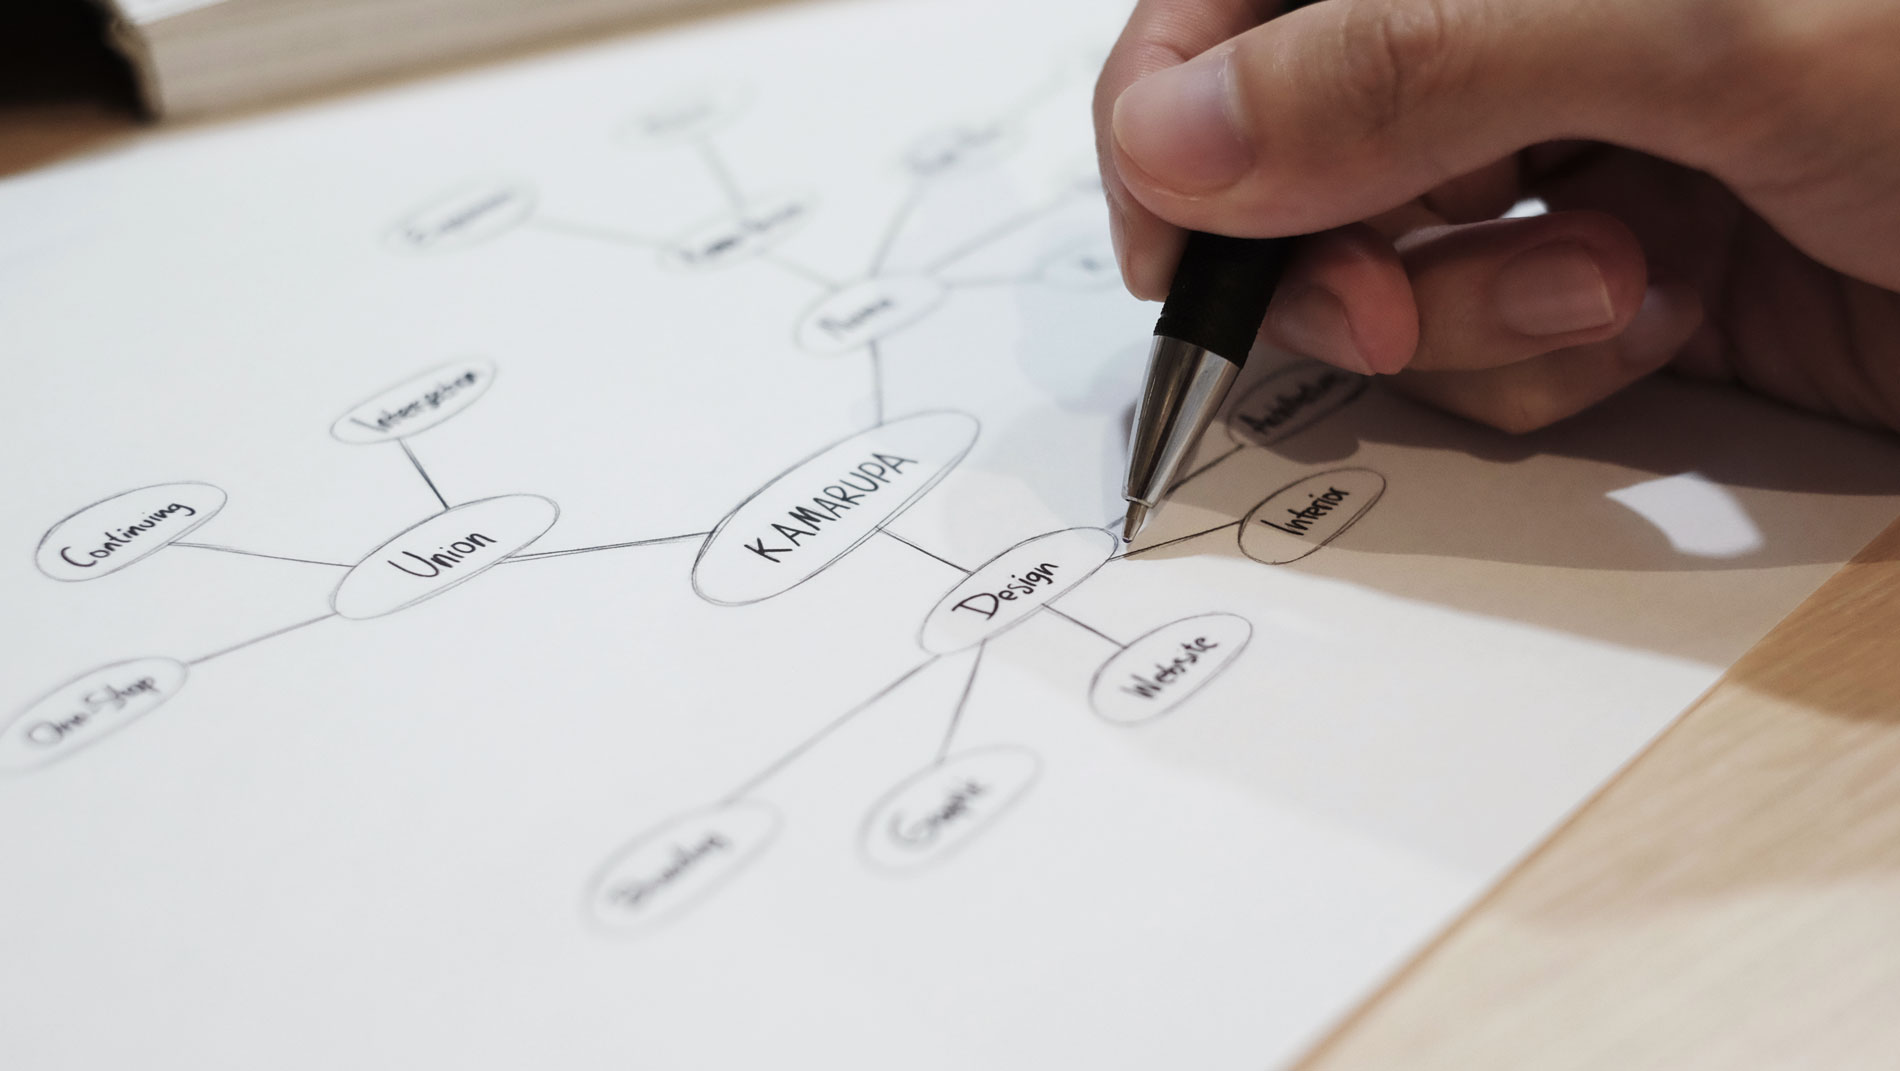 Mind mapping - Successful Logo Co-creation Step 1